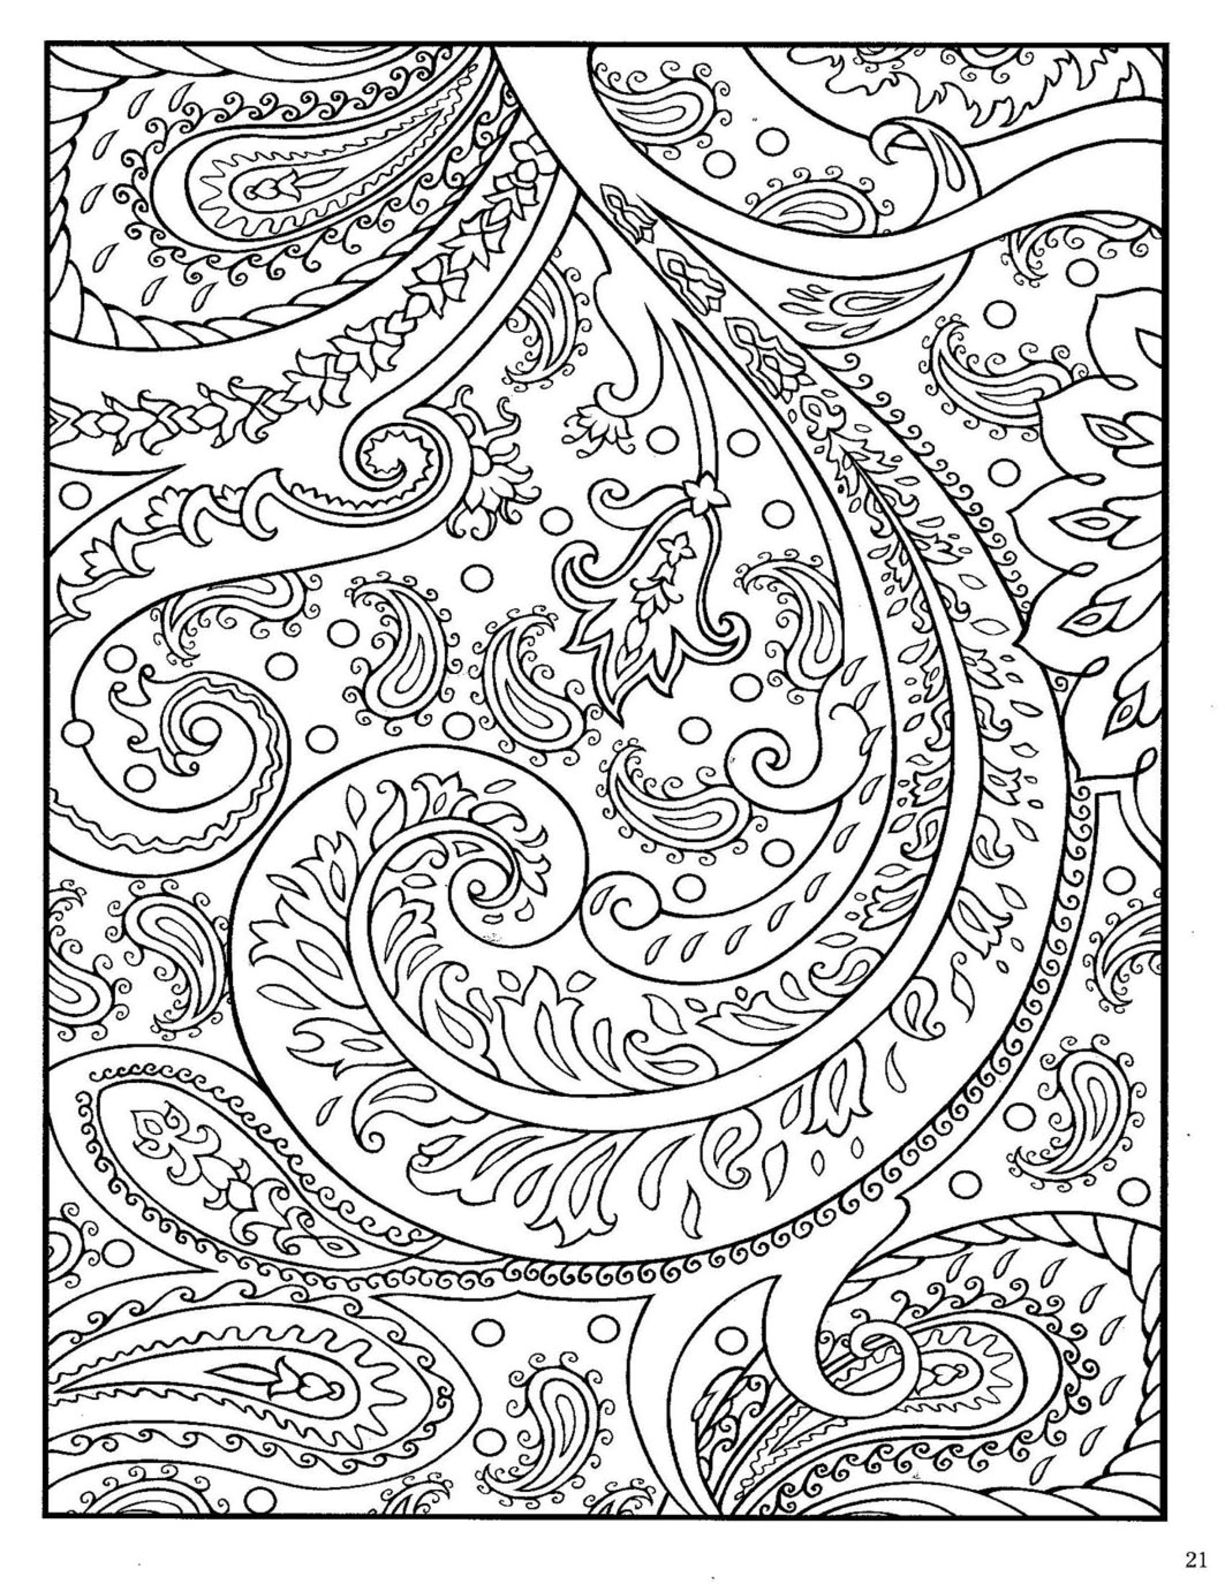 Dover Paisley Designs Coloring Book A C Line Arts And Mandalas